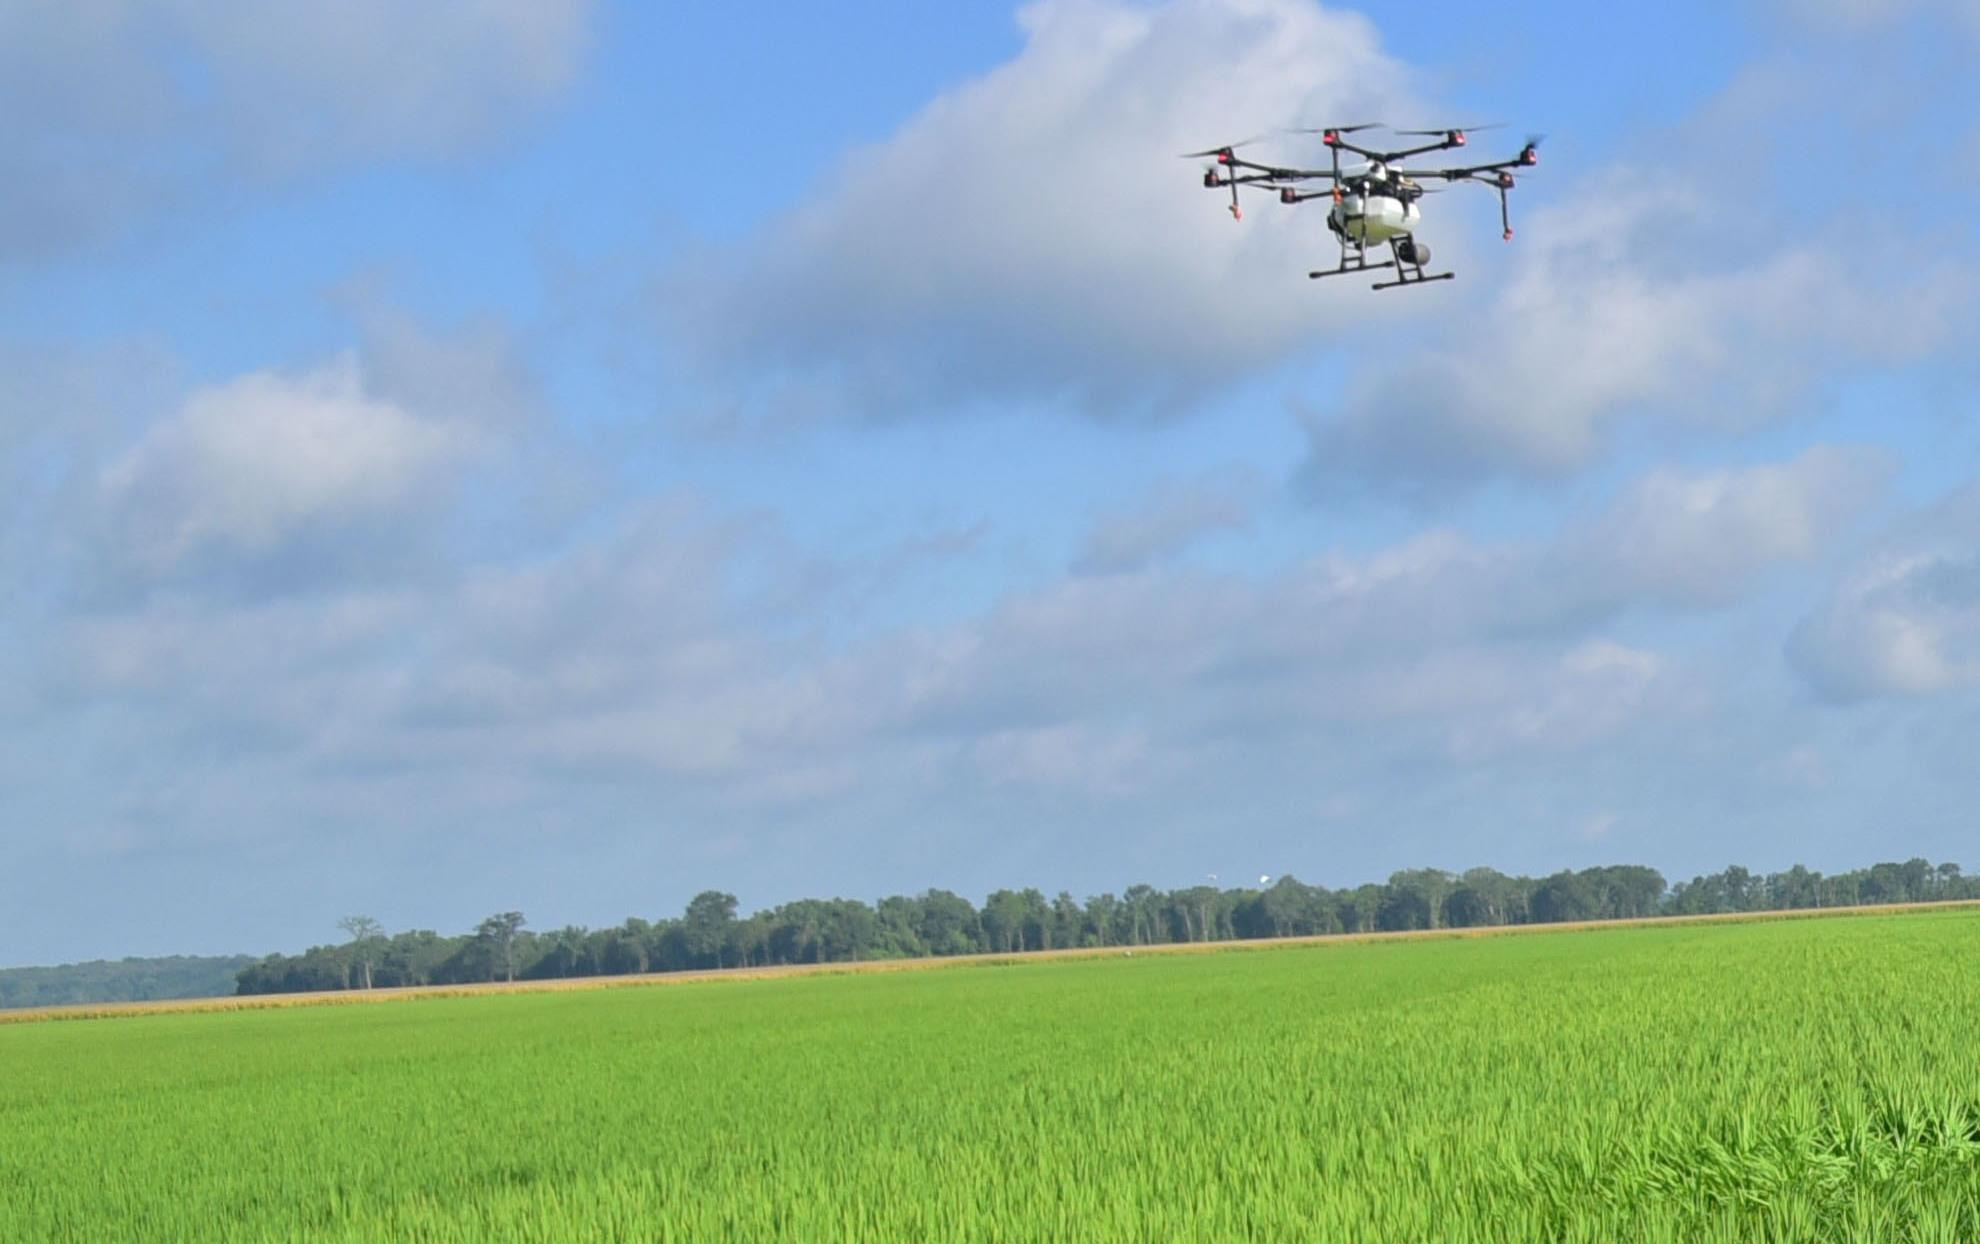 Group of people gathered at edge of bright green rice field watches drone demonstration